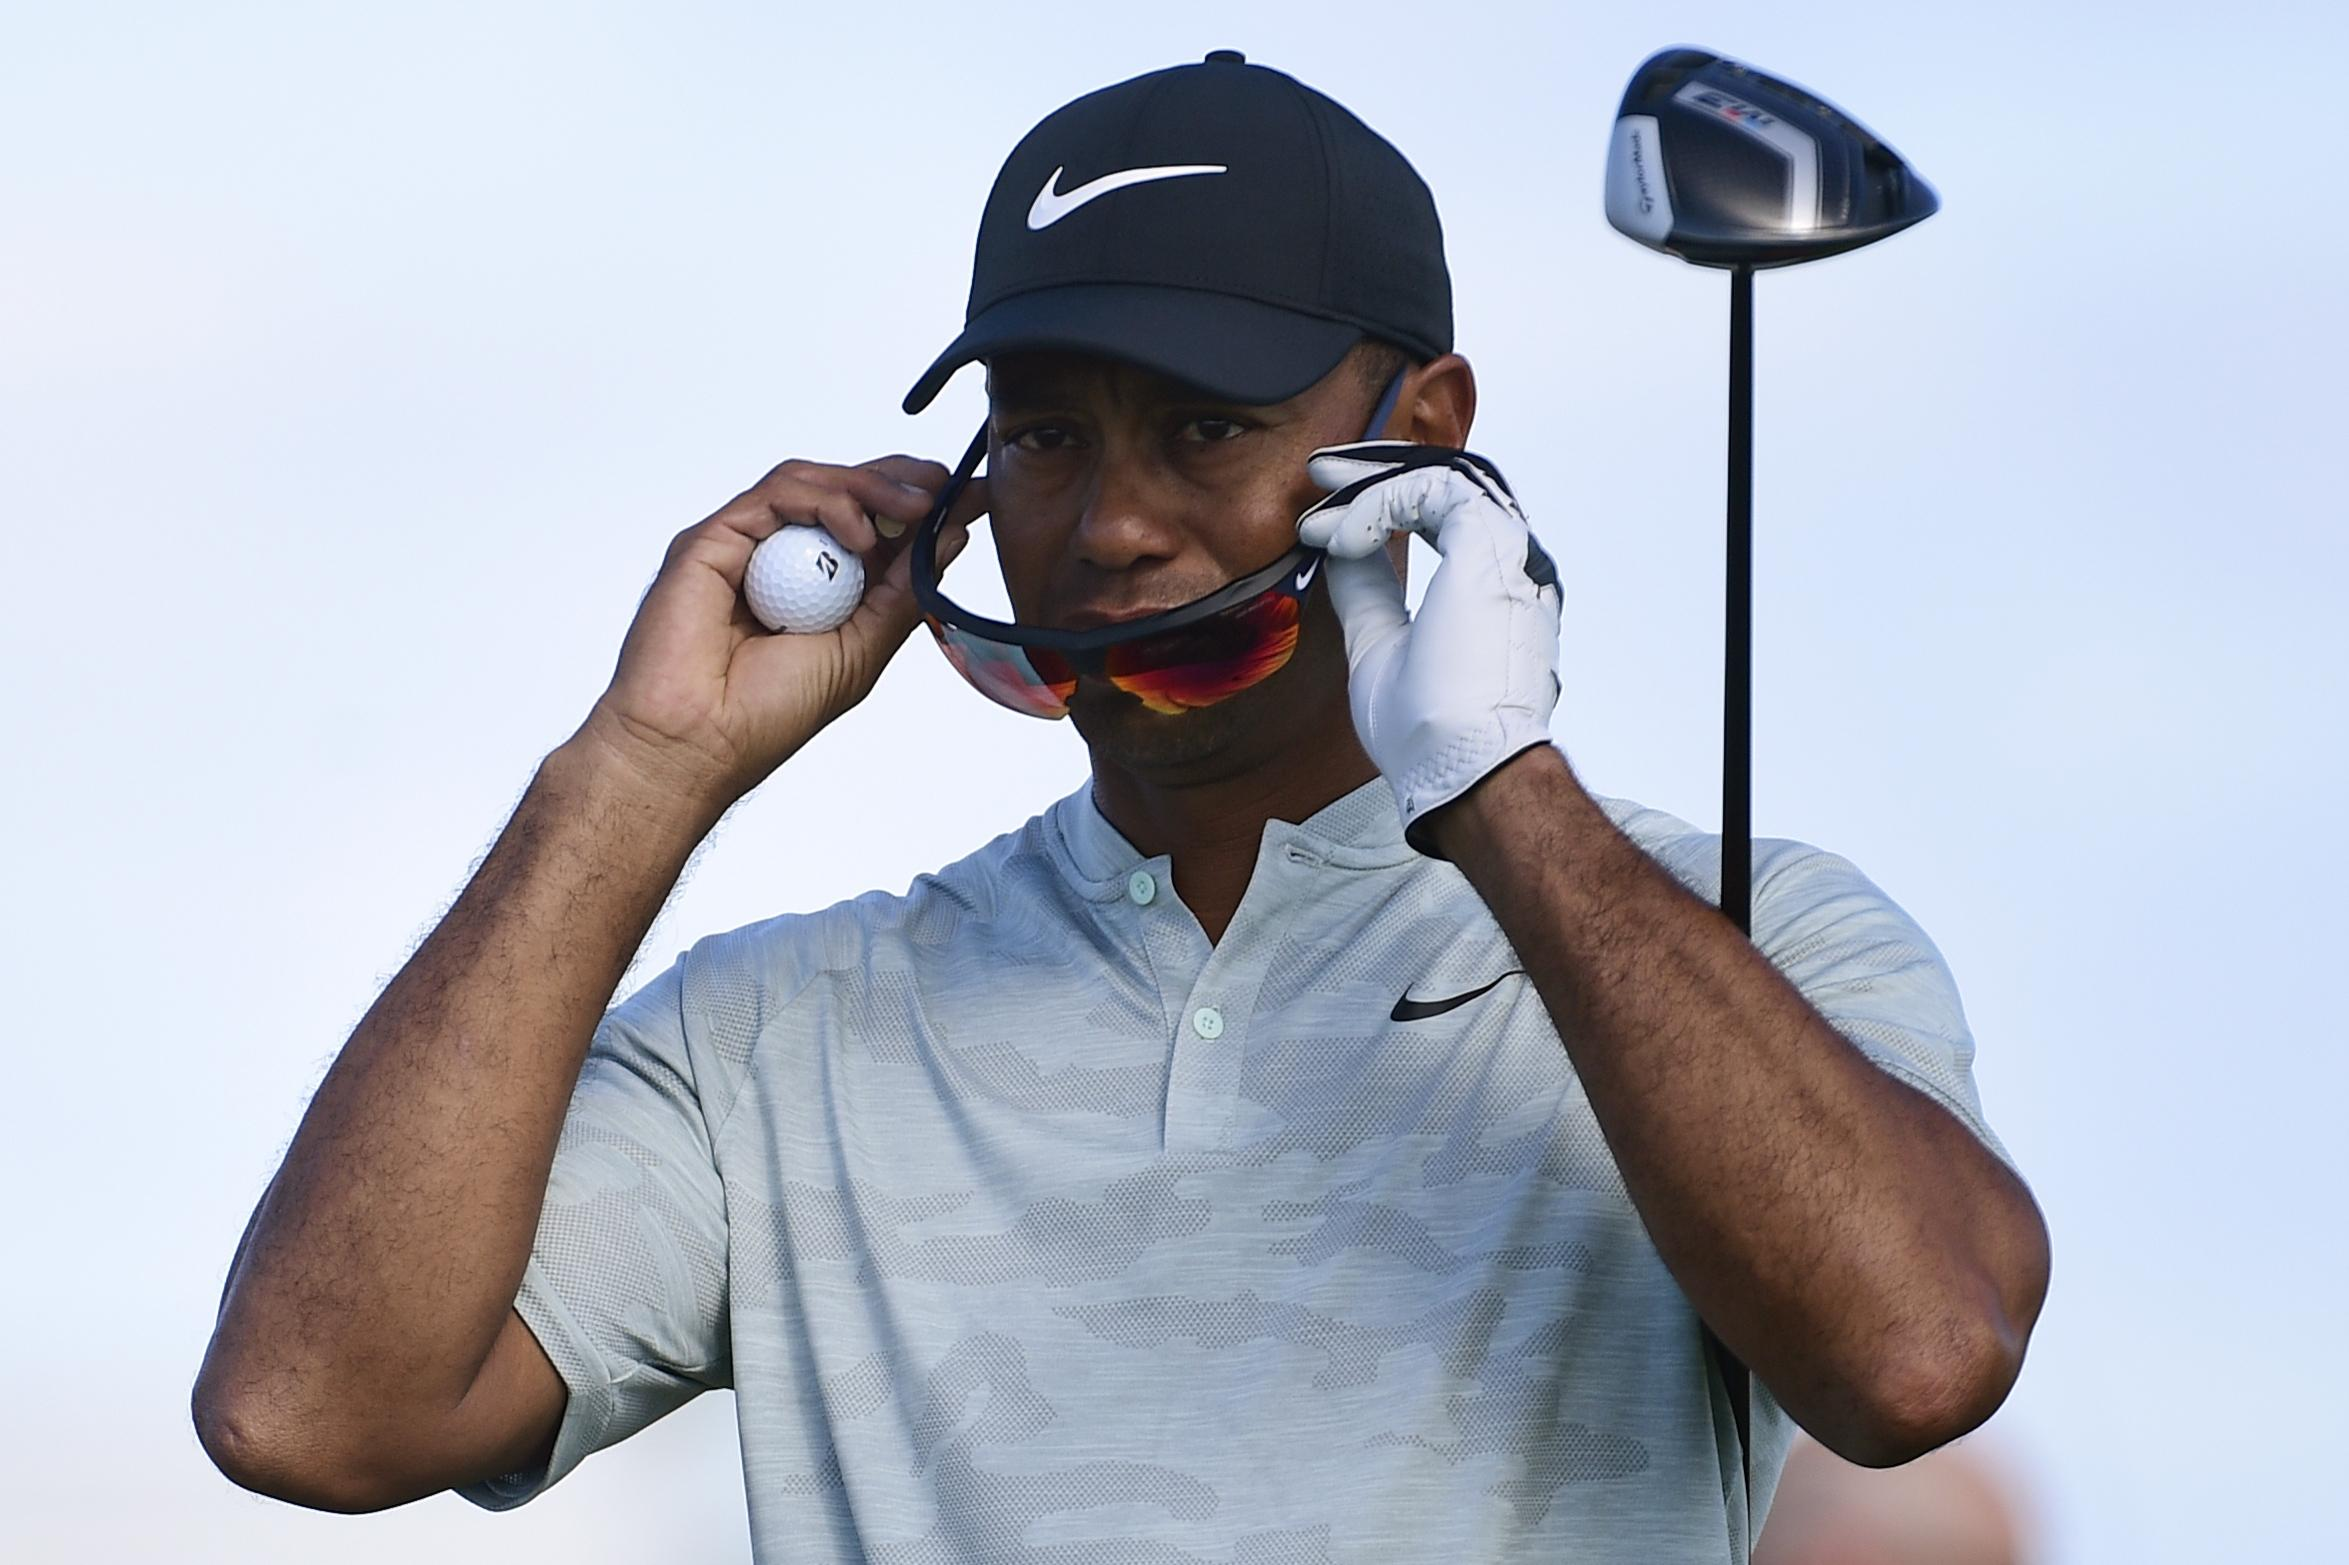 Tiger Woods' revelation about his sore ankles was the latest in a long line of injury scares